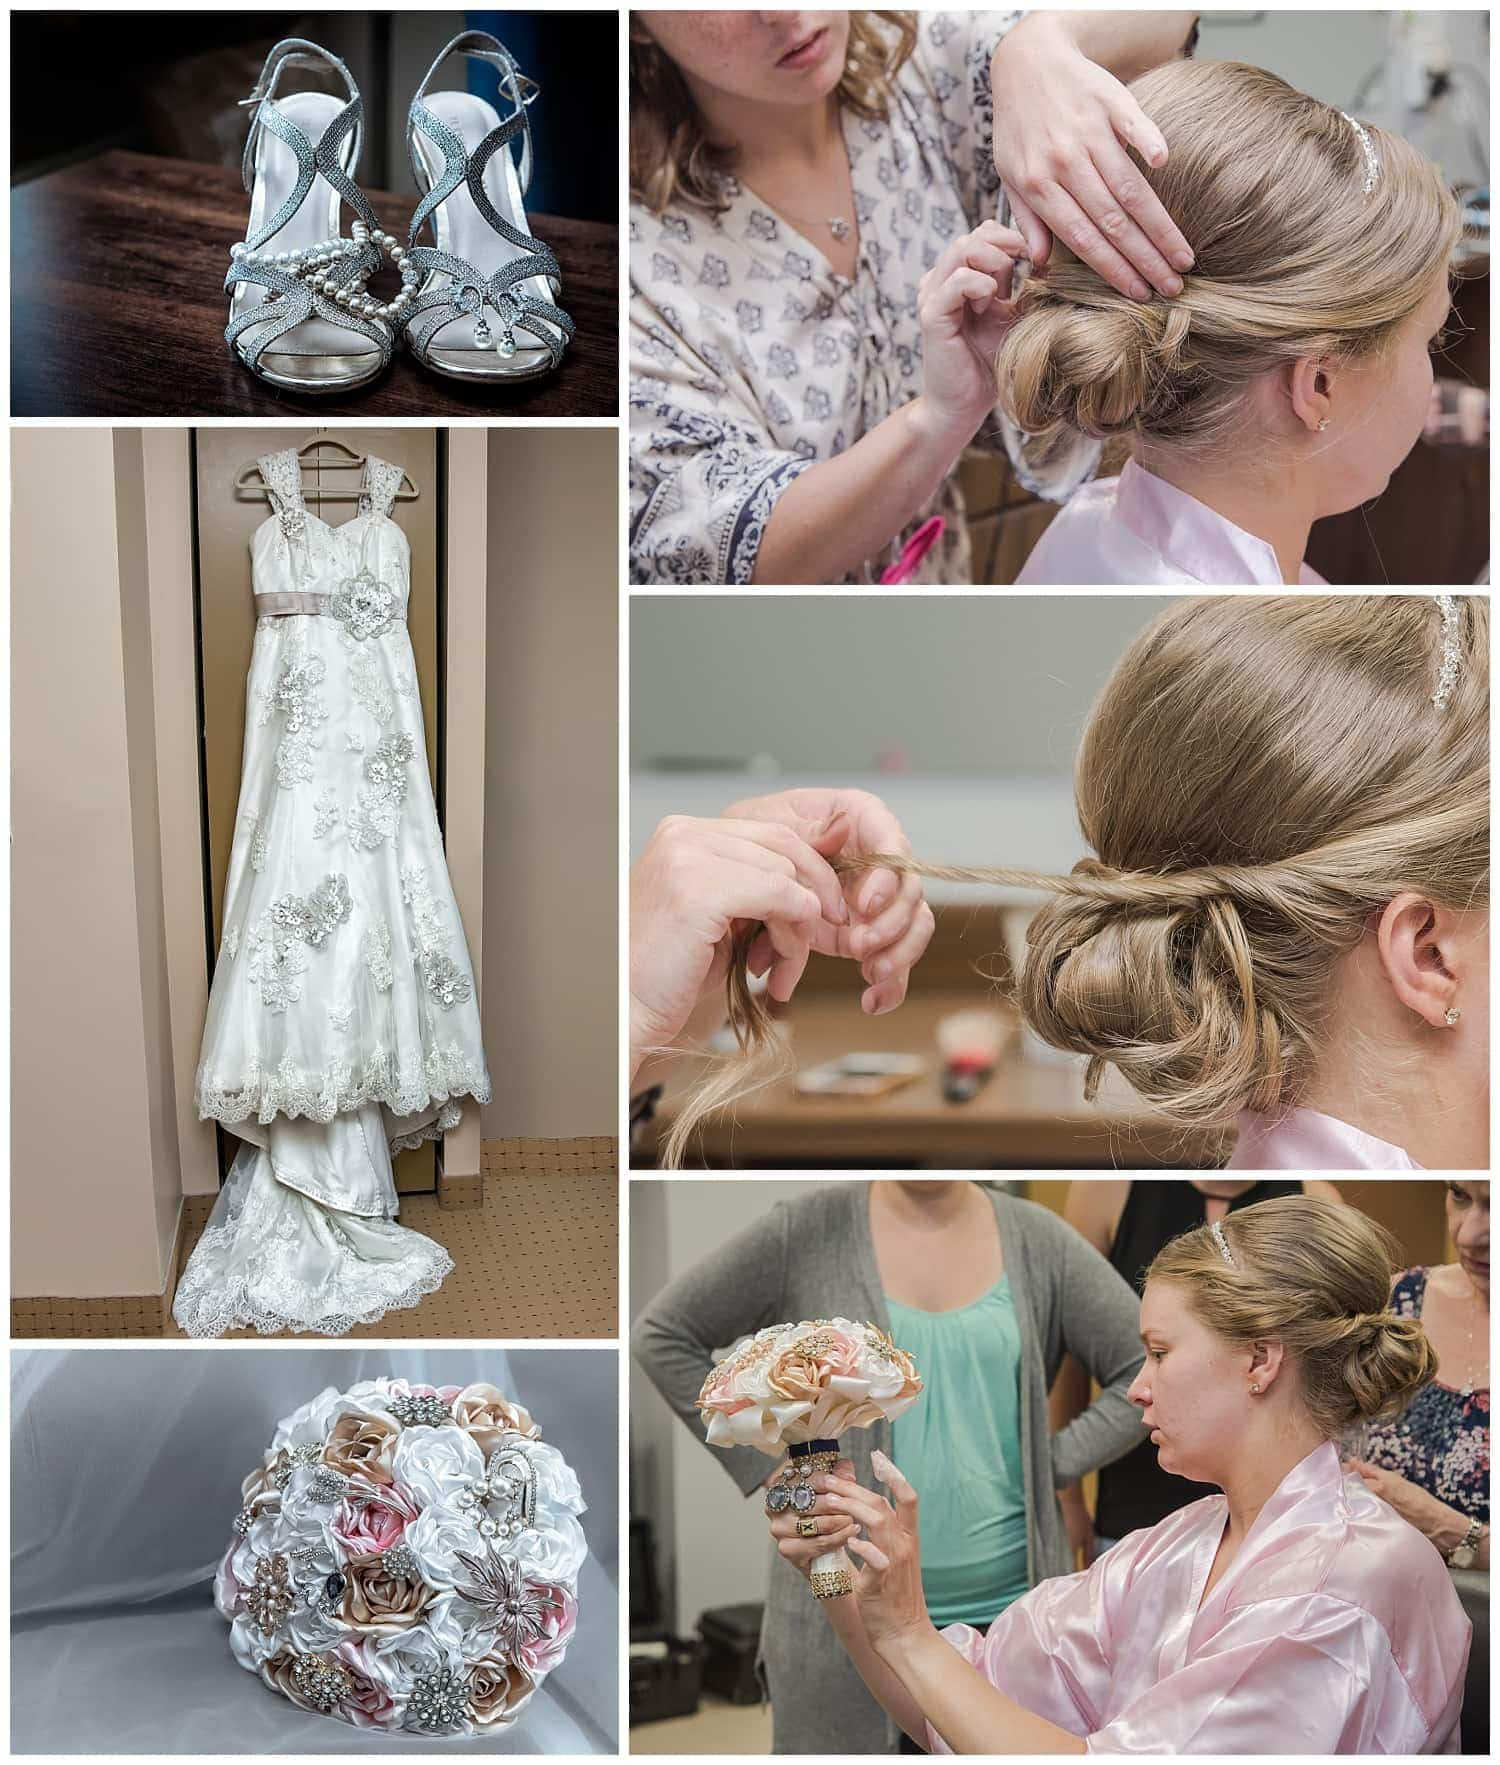 The bride having her hair done during bridal prep and gazing at her bridal brooch bouquet at Juno Tower in Halifax, NS.